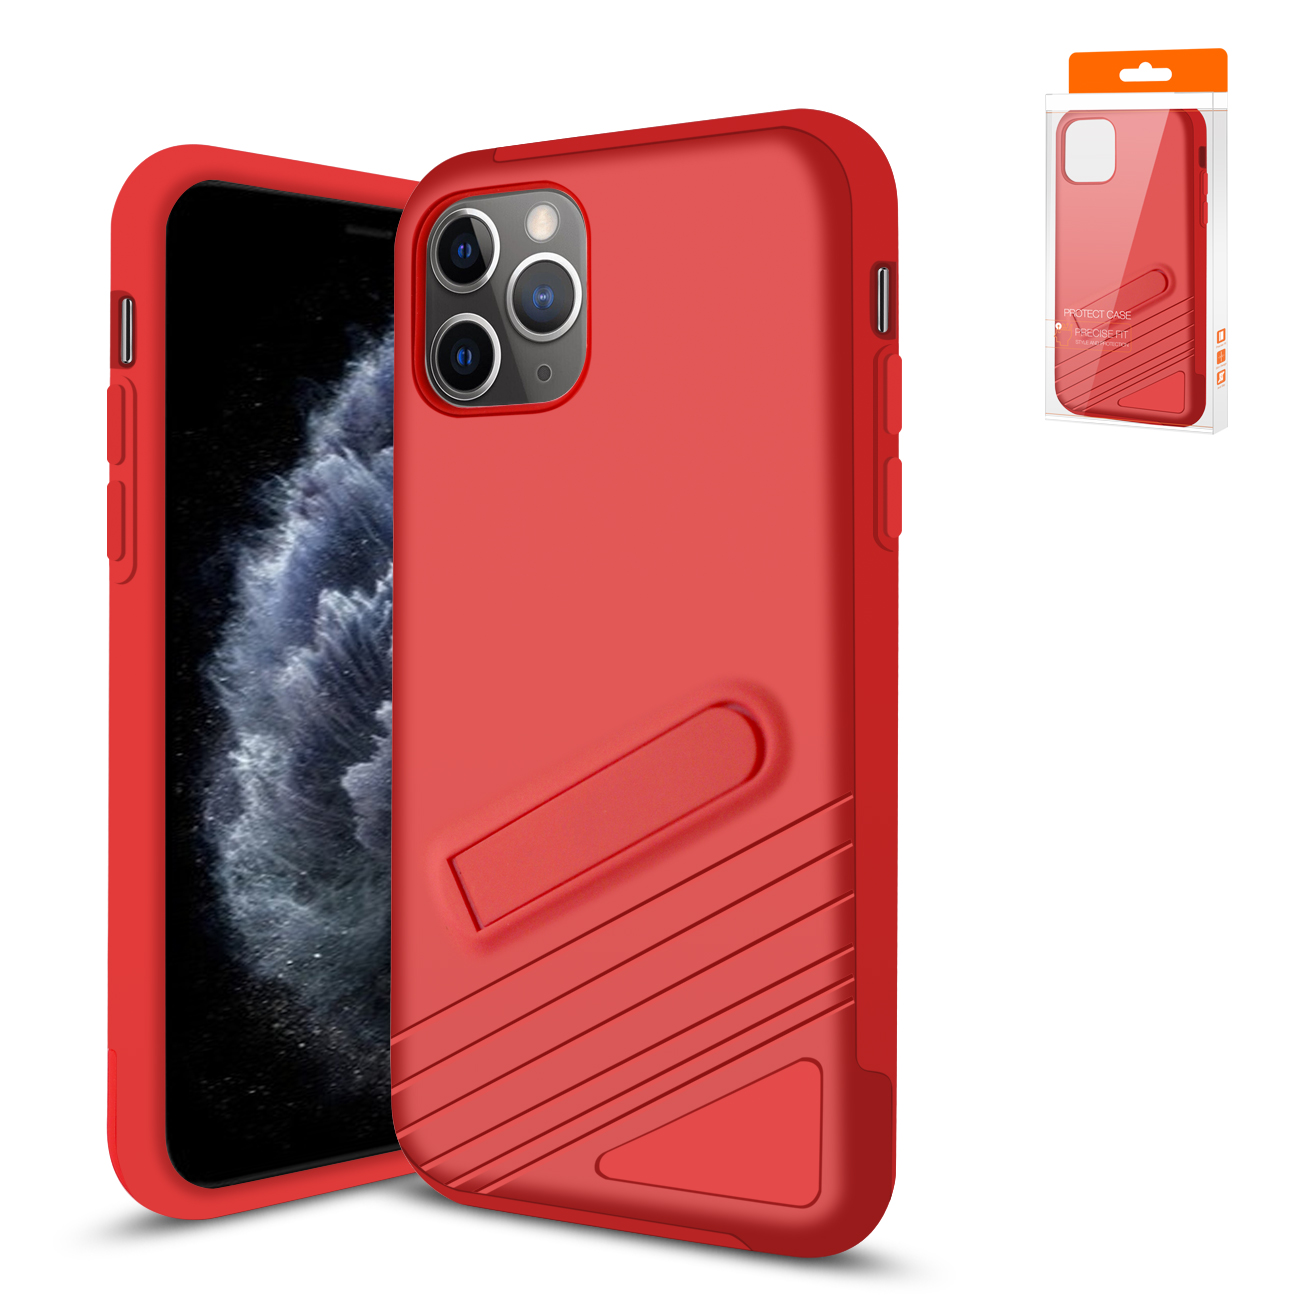 Apple iPhone 11 Pro Armor Cases In Red